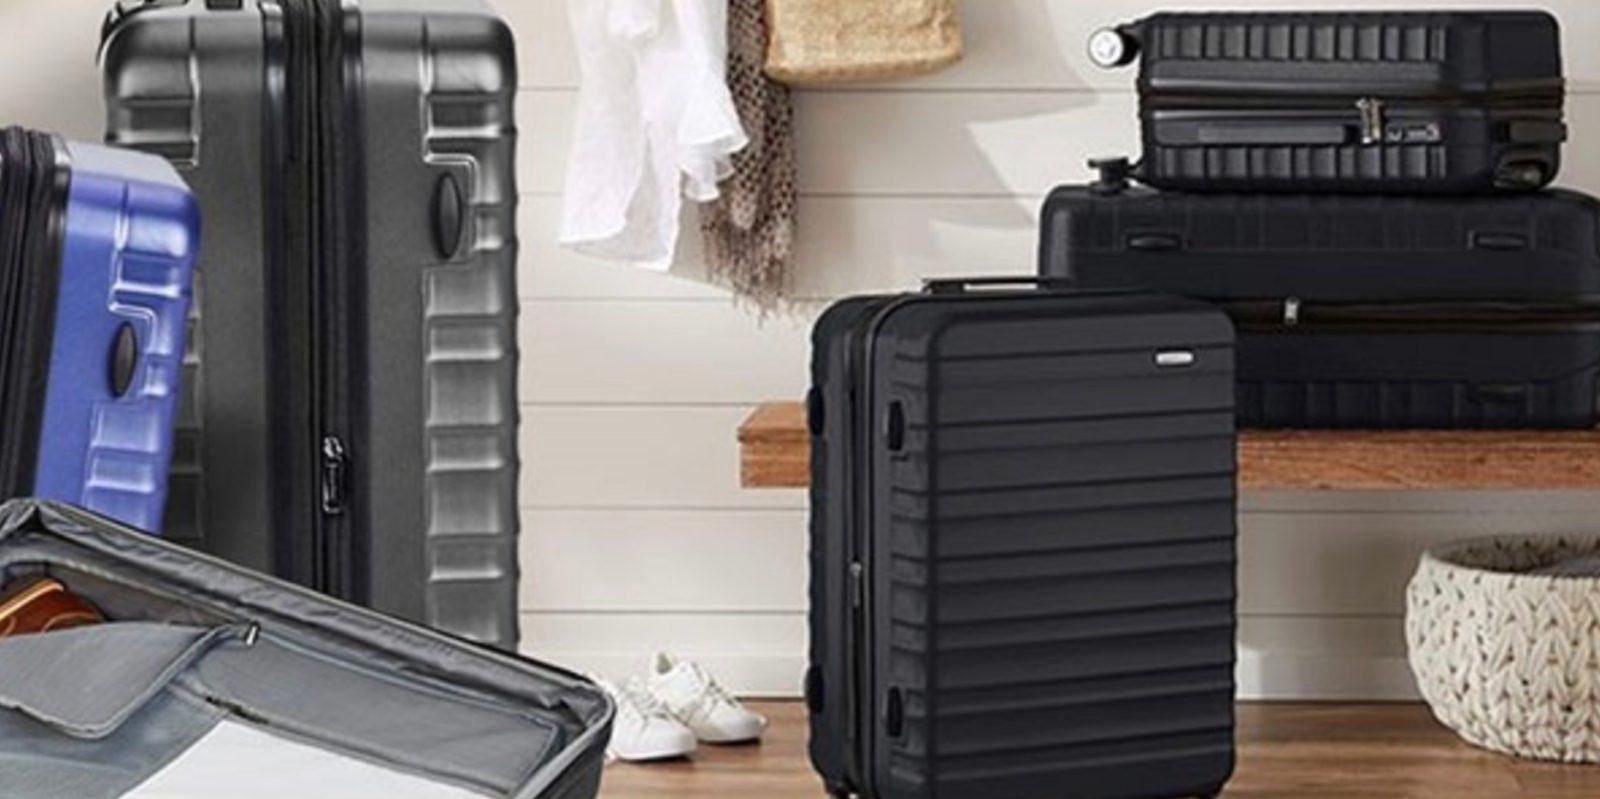 AmazonBasics Hardside Spinner Luggage at up to 53% off from $37 Prime shipped